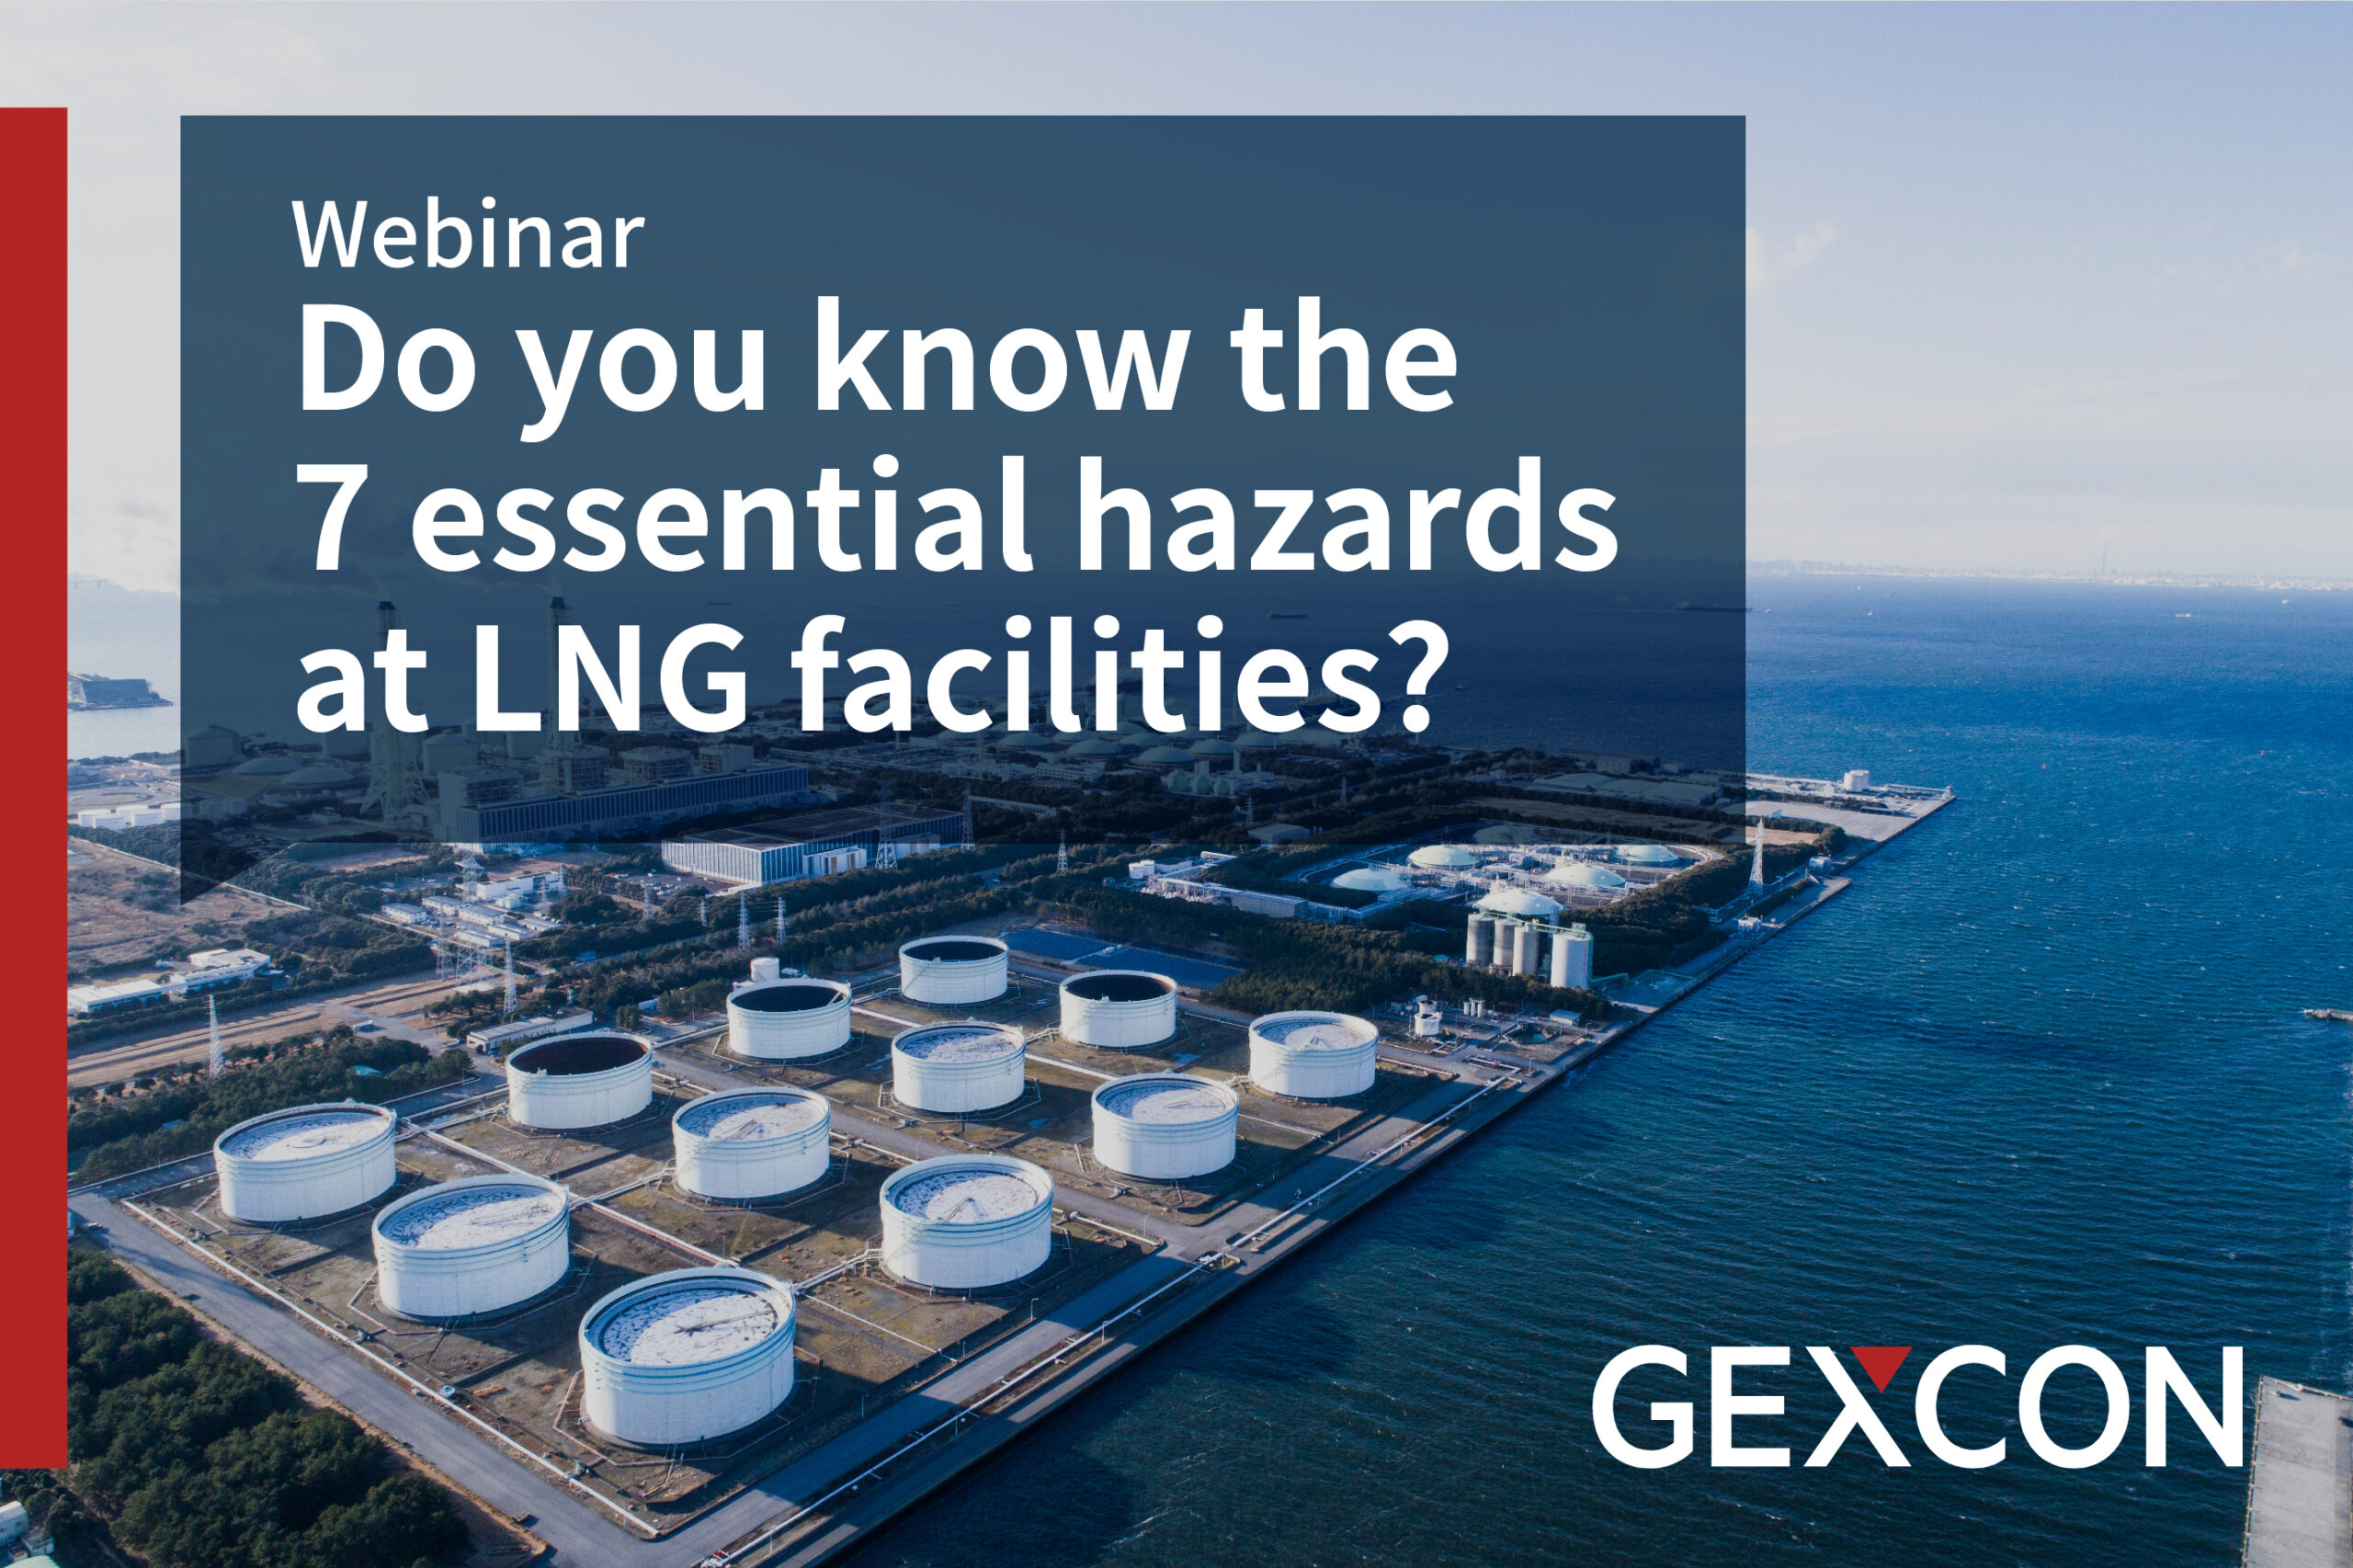 Webinar - Do you know the 7 essential hazards at LNG facilities